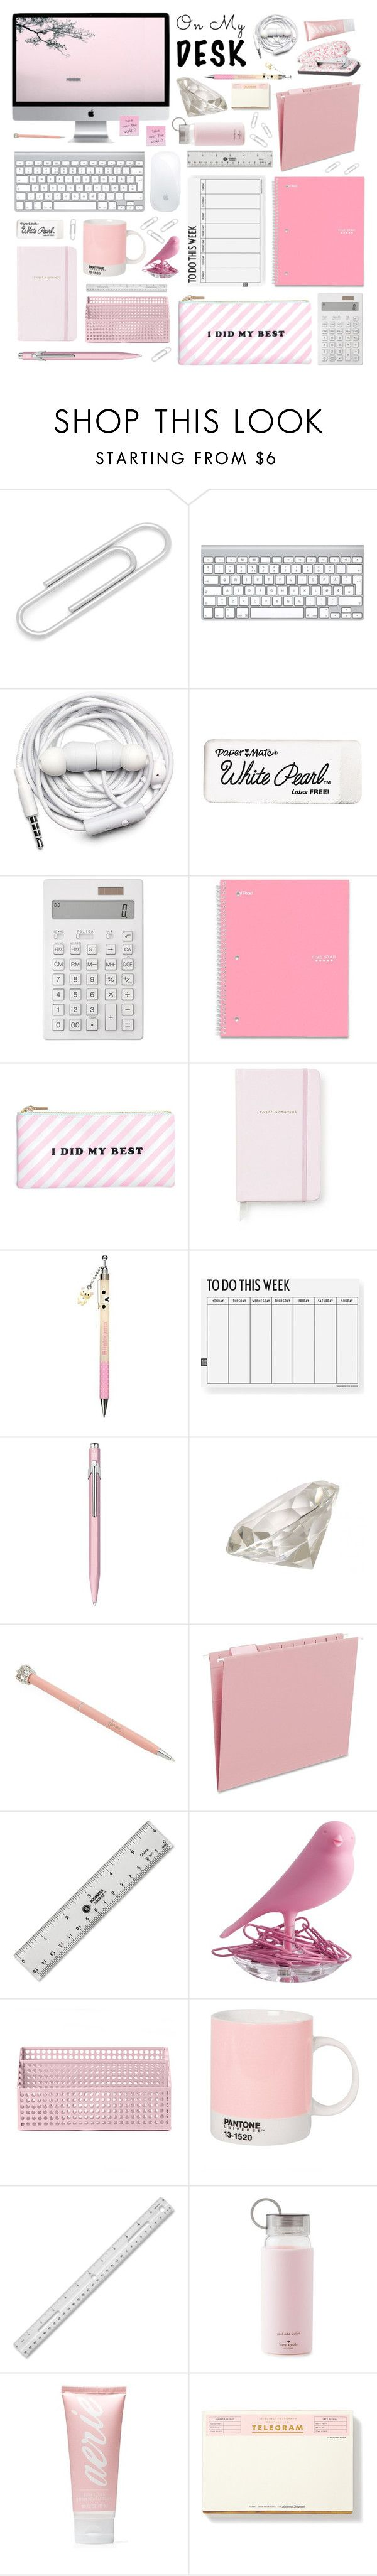 """On My Desk"" by cara-mia-mon-cher on Polyvore featuring interior, interiors, interior design, home, home decor, interior decorating, Ox & Bull Trading Co., Urbanears, Paper Mate and Seed Design"